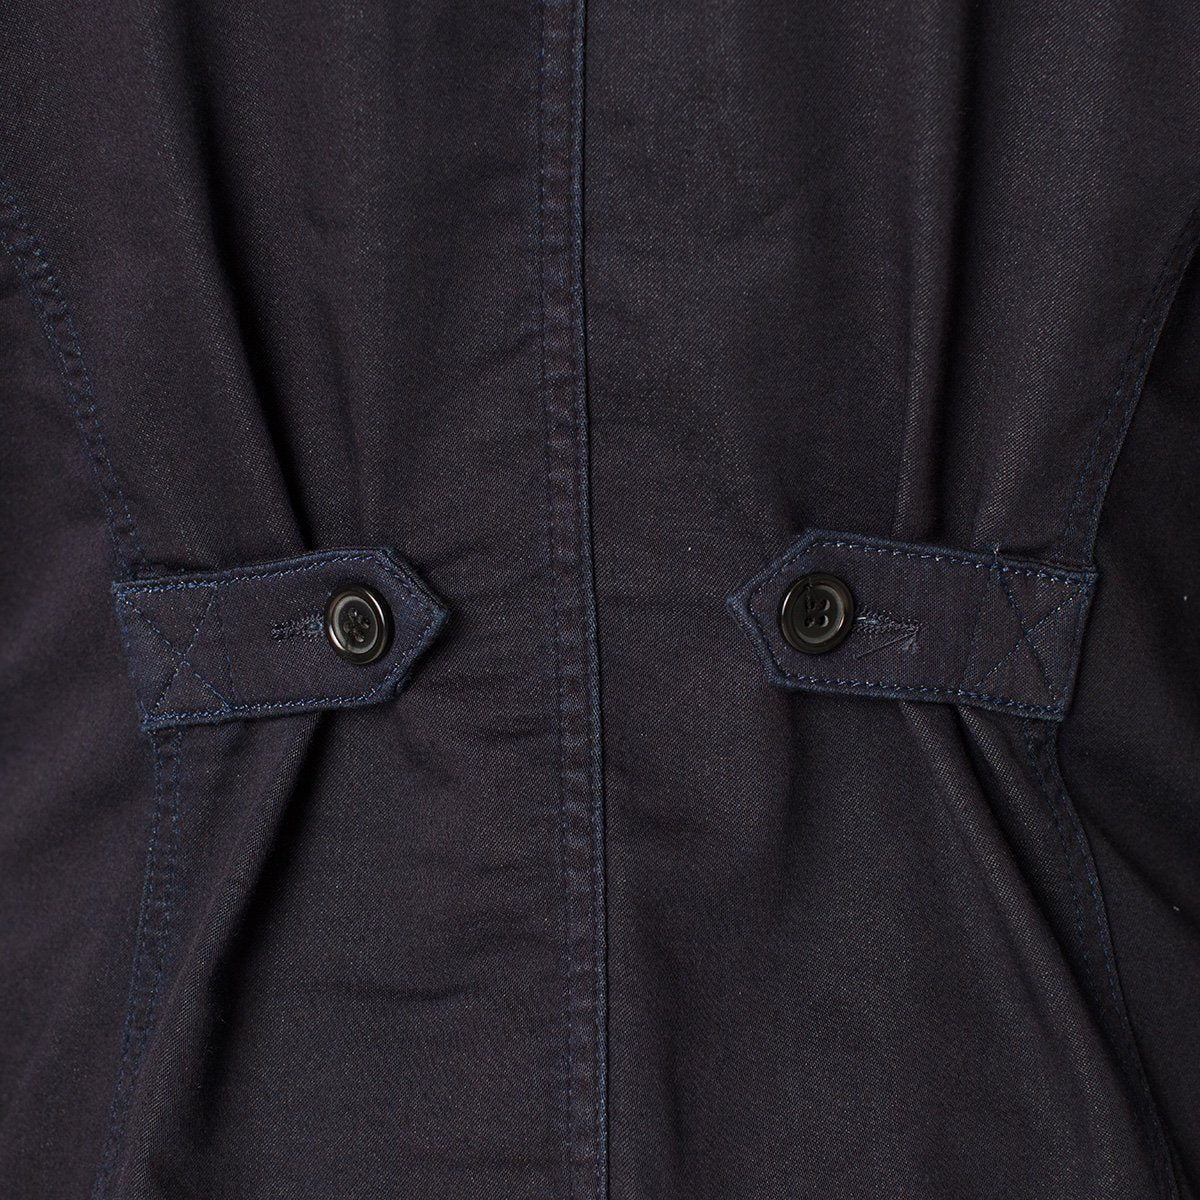 &SONS Crafter II Raw Navy Chore Jacket